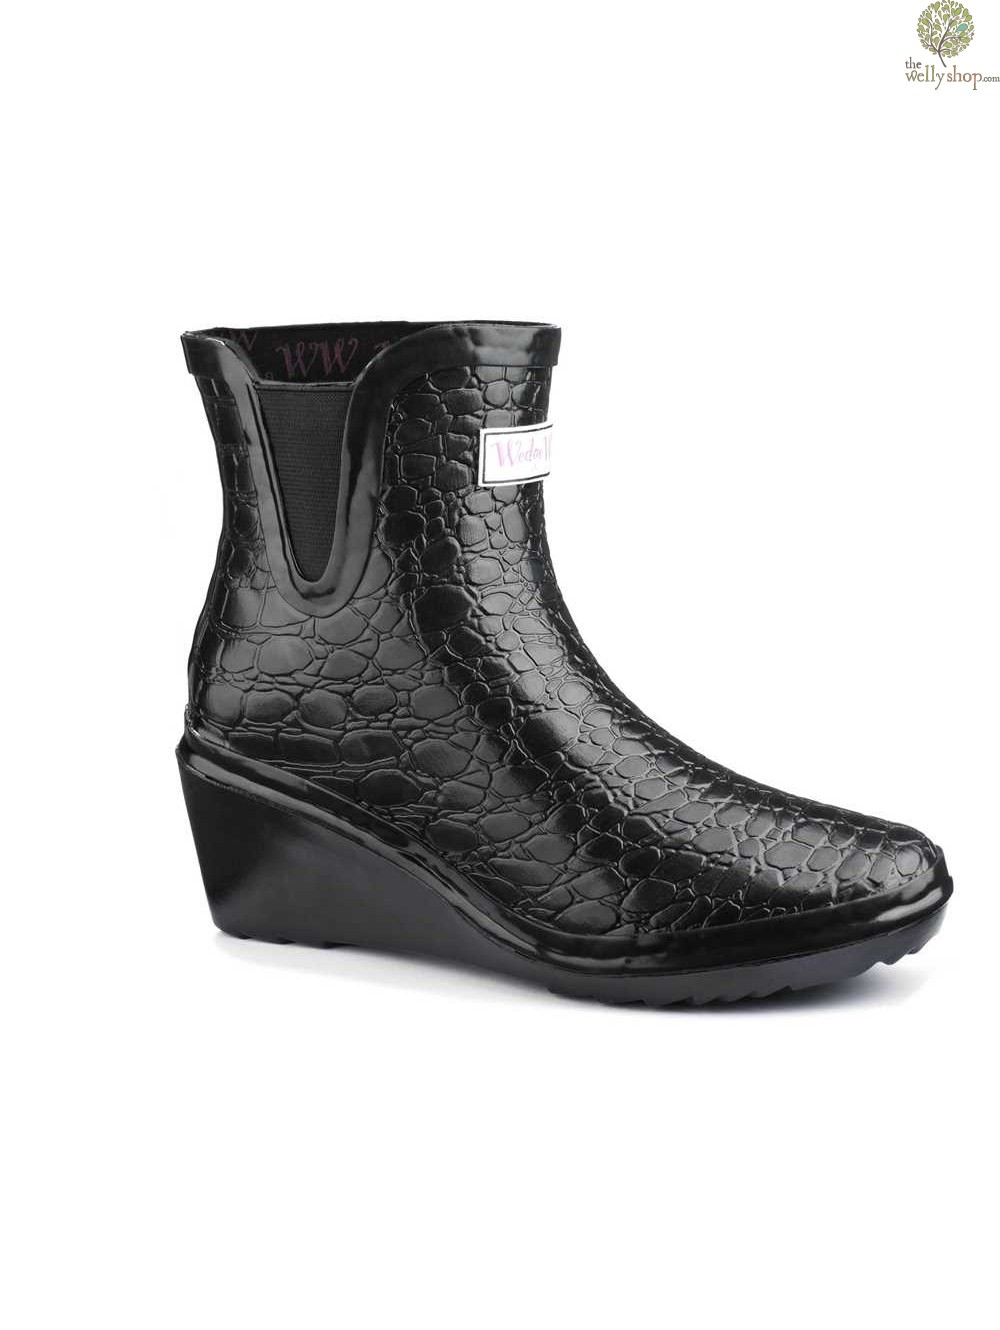 f357d43d095 Wedge Welly Man Eater Chelsea Ankle Boots